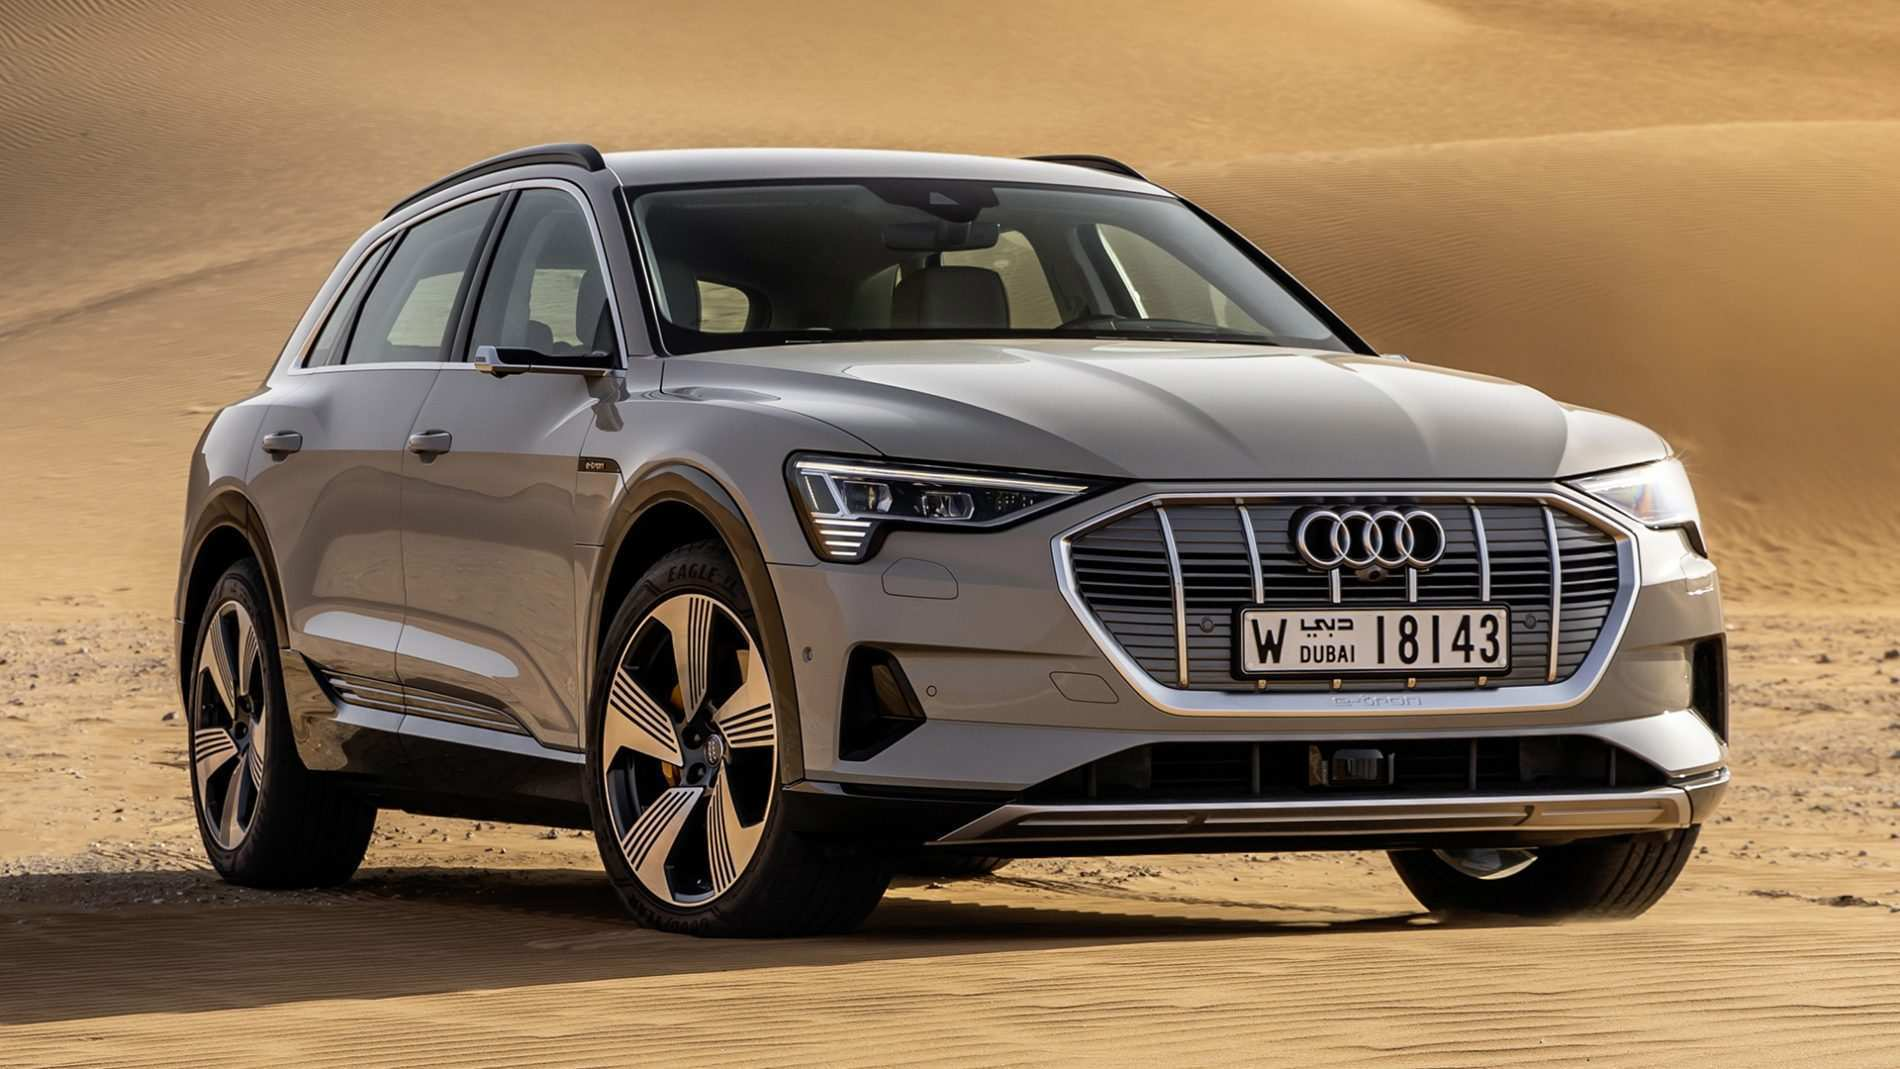 82 Great 2019 Audi Electric Car Model with 2019 Audi Electric Car